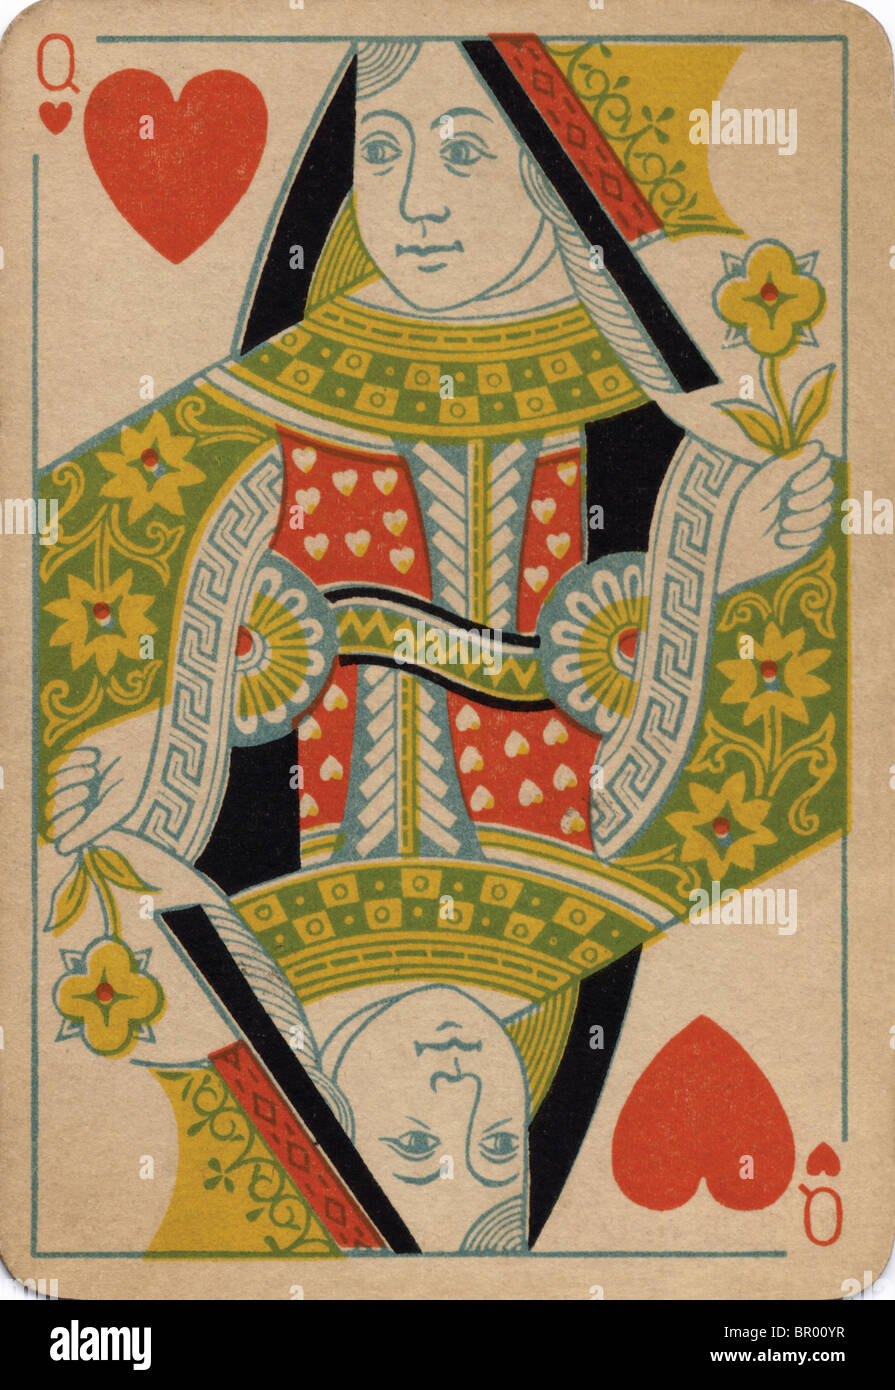 Queen of Hearts vintage playing card - Stock Image